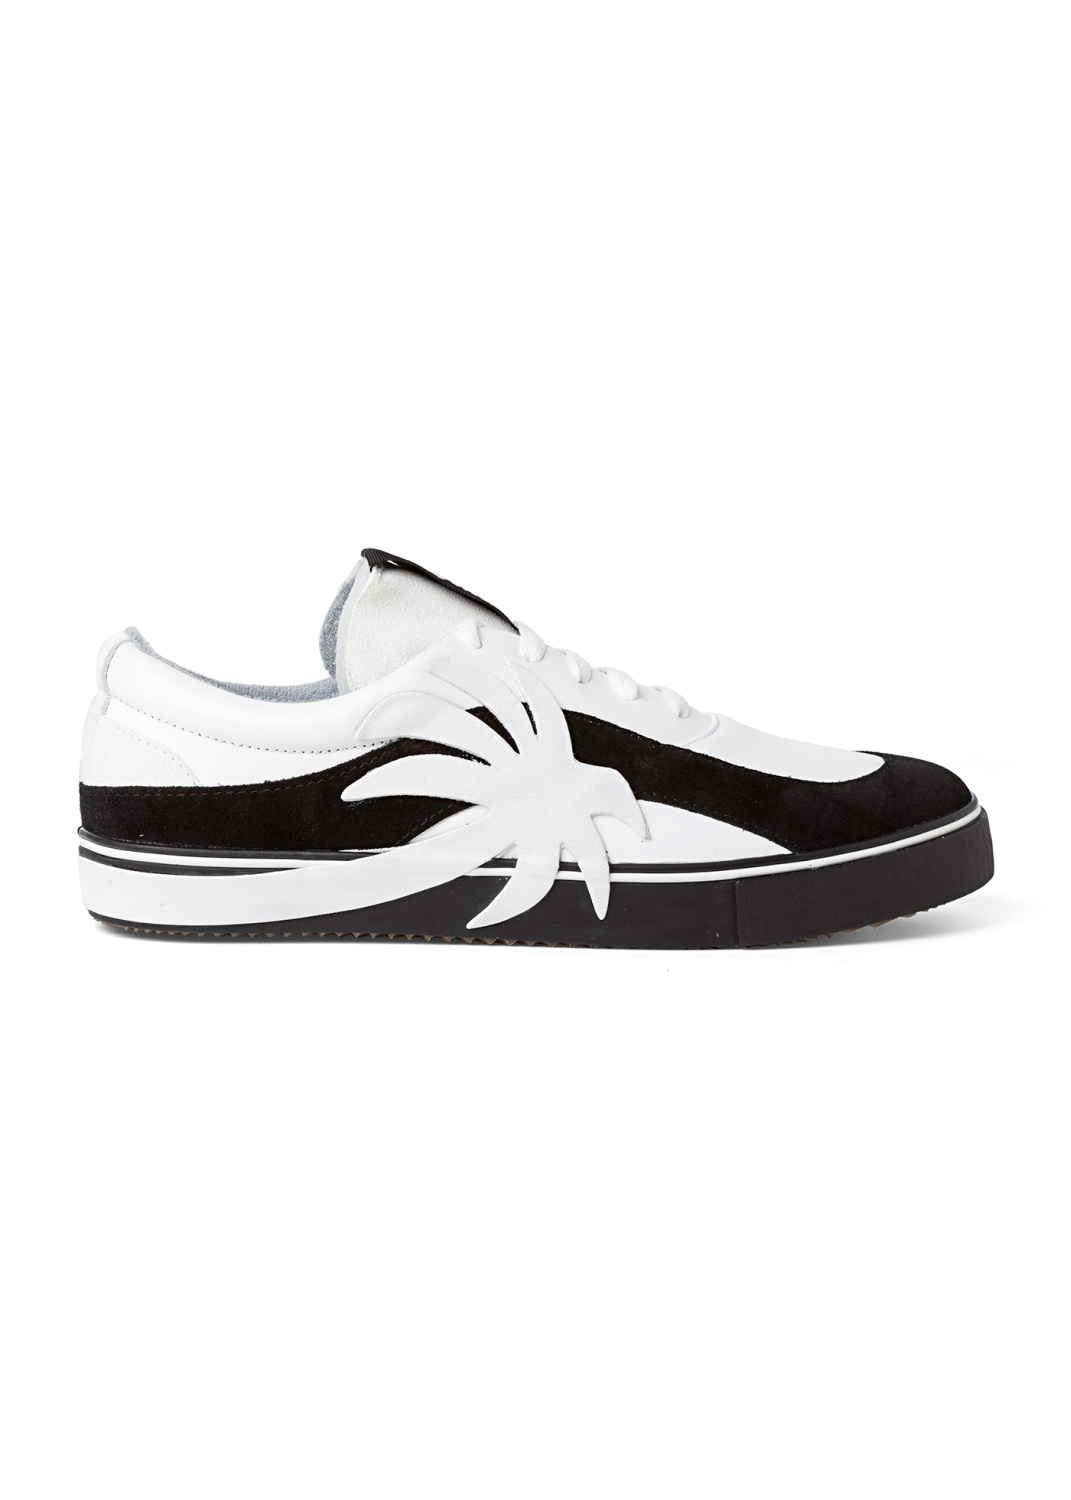 VULC PALM LOW image number 0